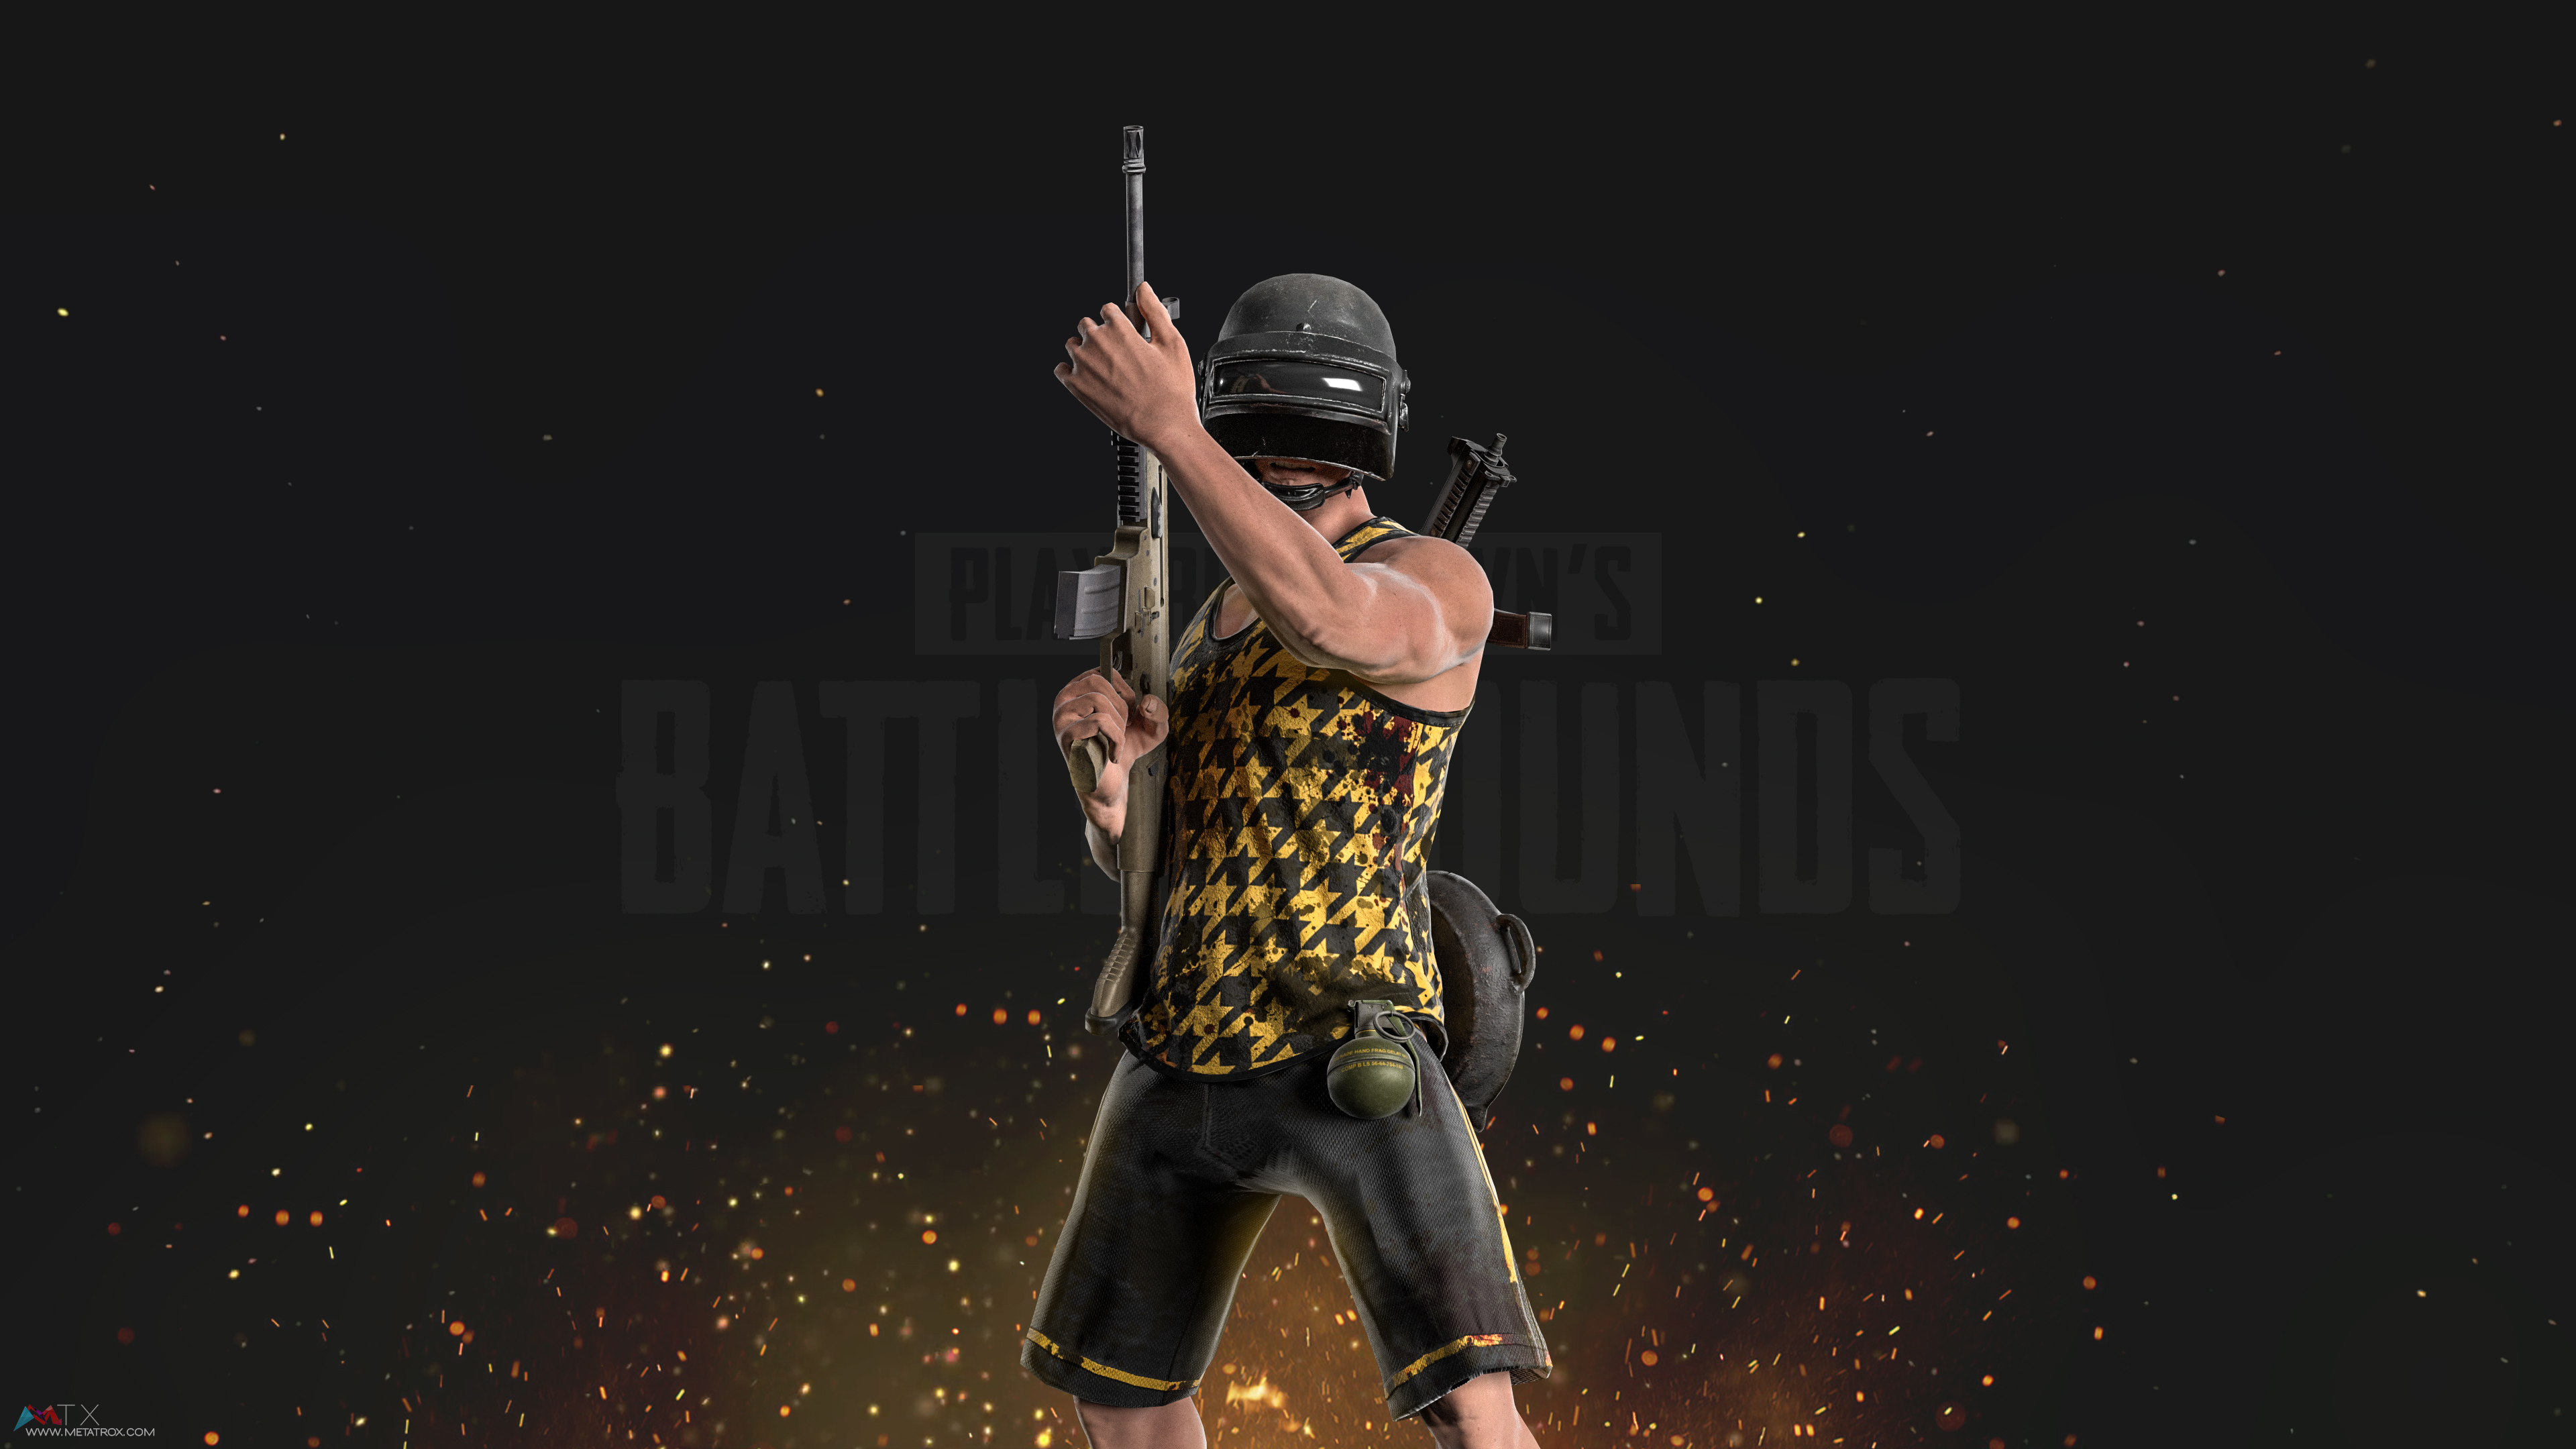 Pubg Wallpaper 1920x1080: Pubg, HD Games, 4k Wallpapers, Images, Backgrounds, Photos